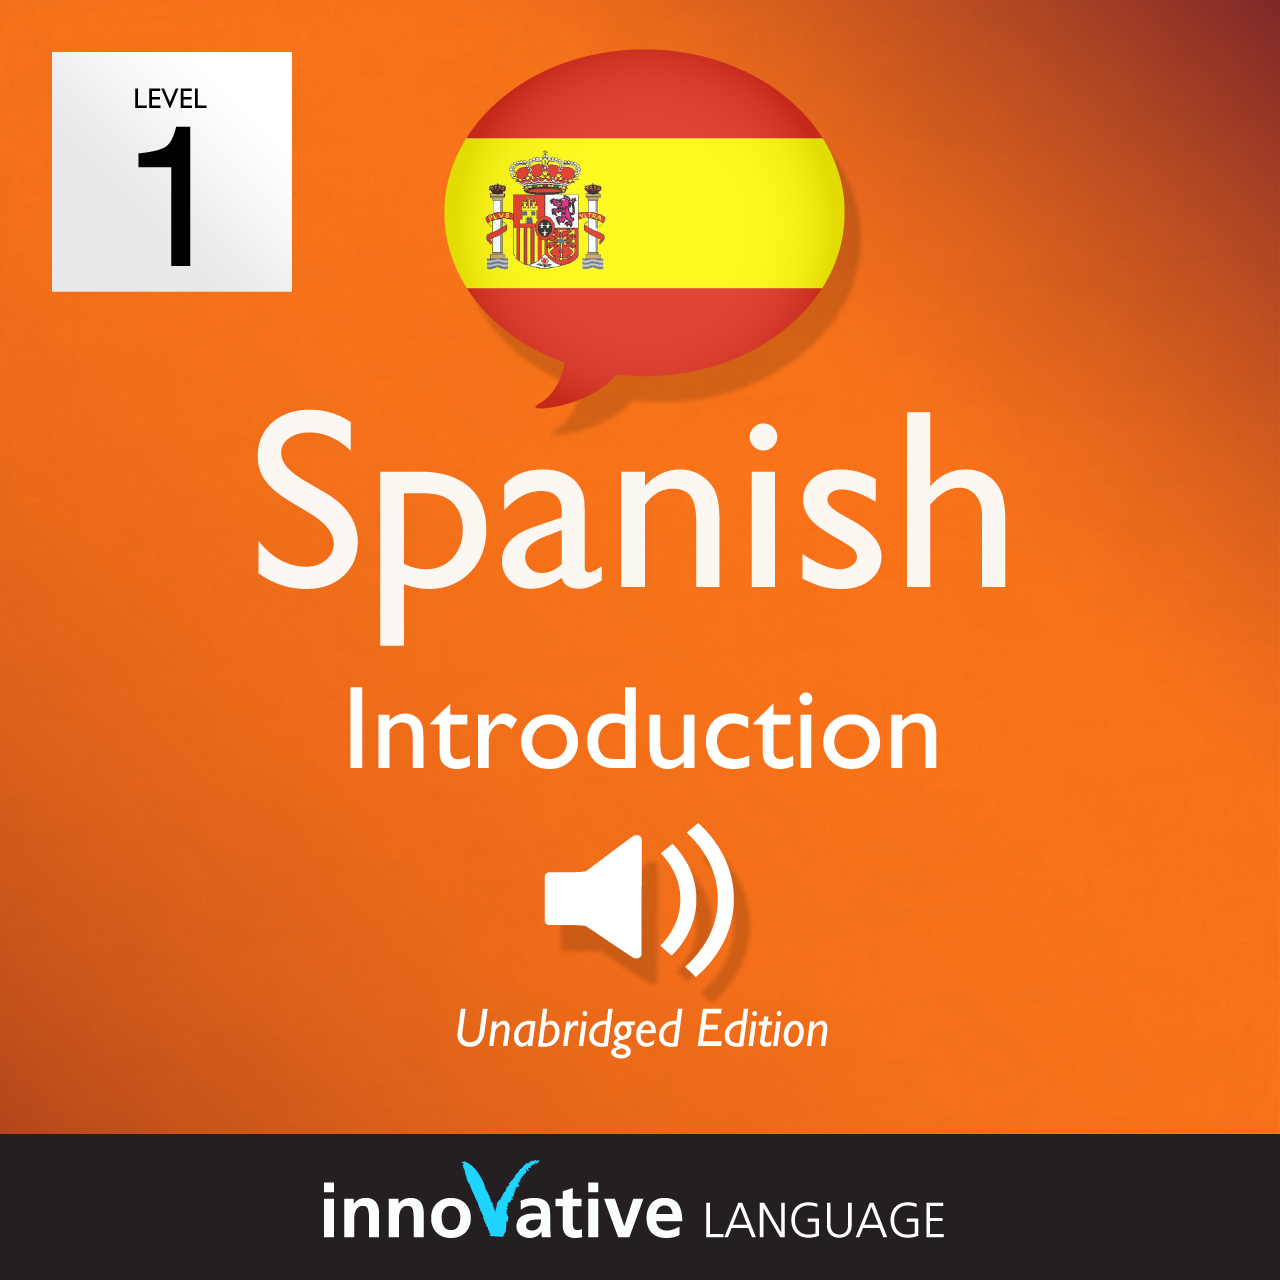 [Audiobook] Learn Spanish - Level 1: Introduction to Spanish, Volume 1